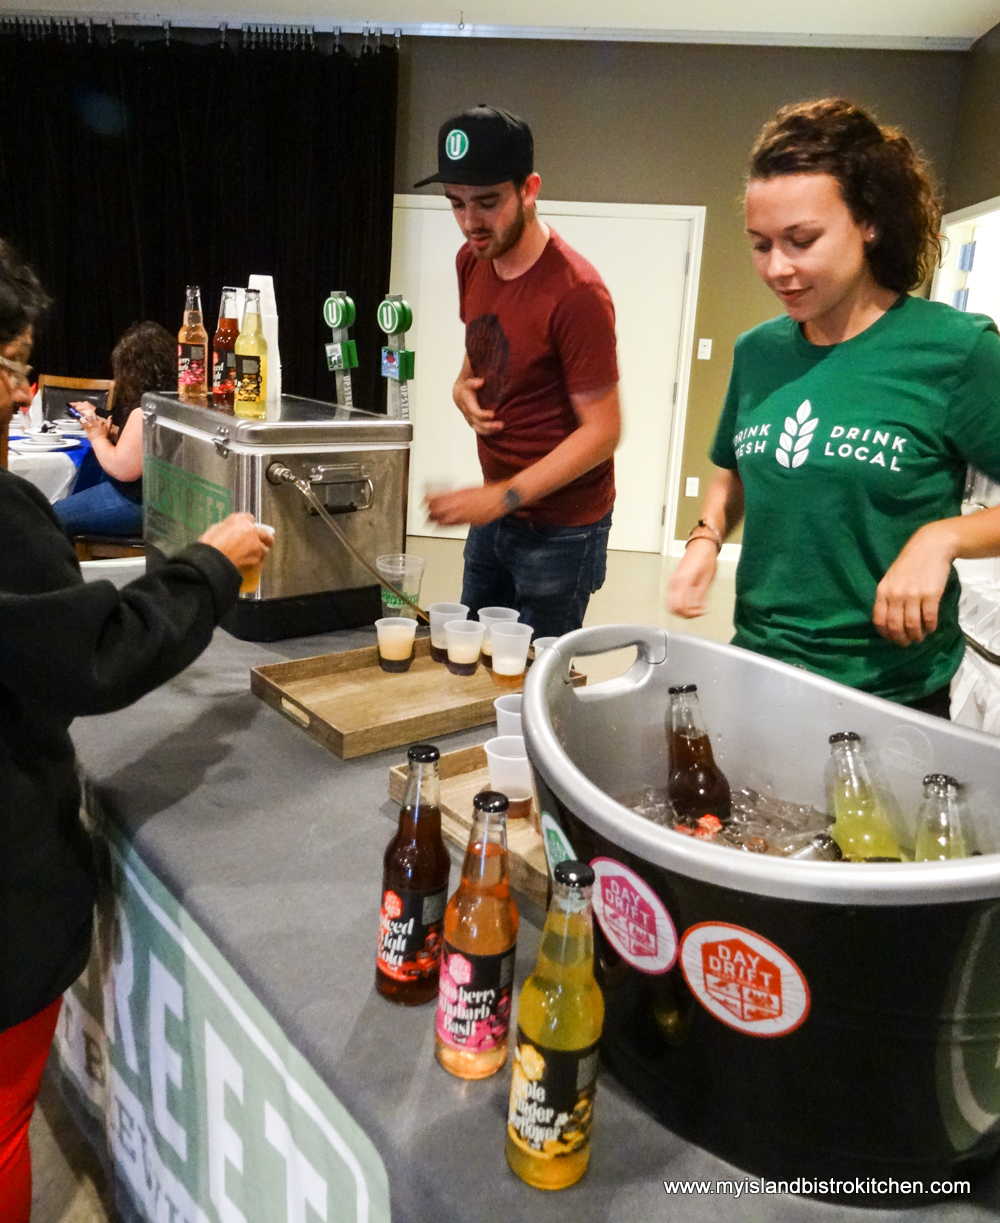 Sampling New Line of Sodas from Upstreet Craft Brewing of Charlottetown, PEI at Le Festin acadien avec homard (PEI Fall Flavours Event 2017)